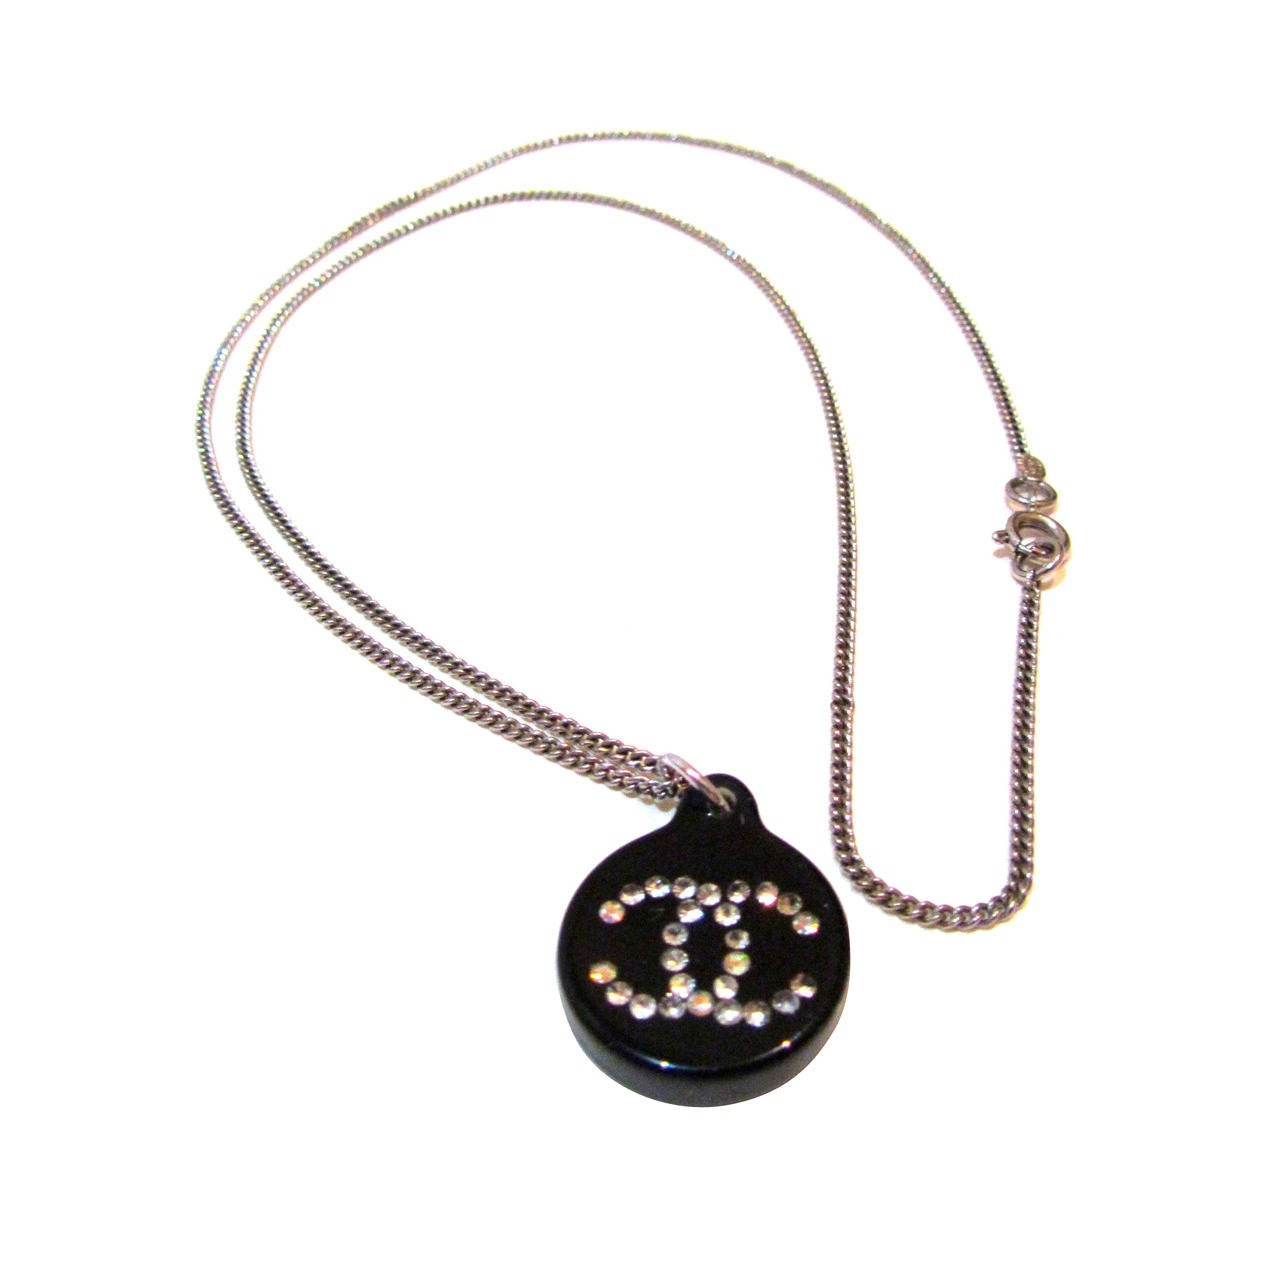 Chanel Necklace - Silver Tone Chain - Black Resin Charm with Crystal CC Inlay 1